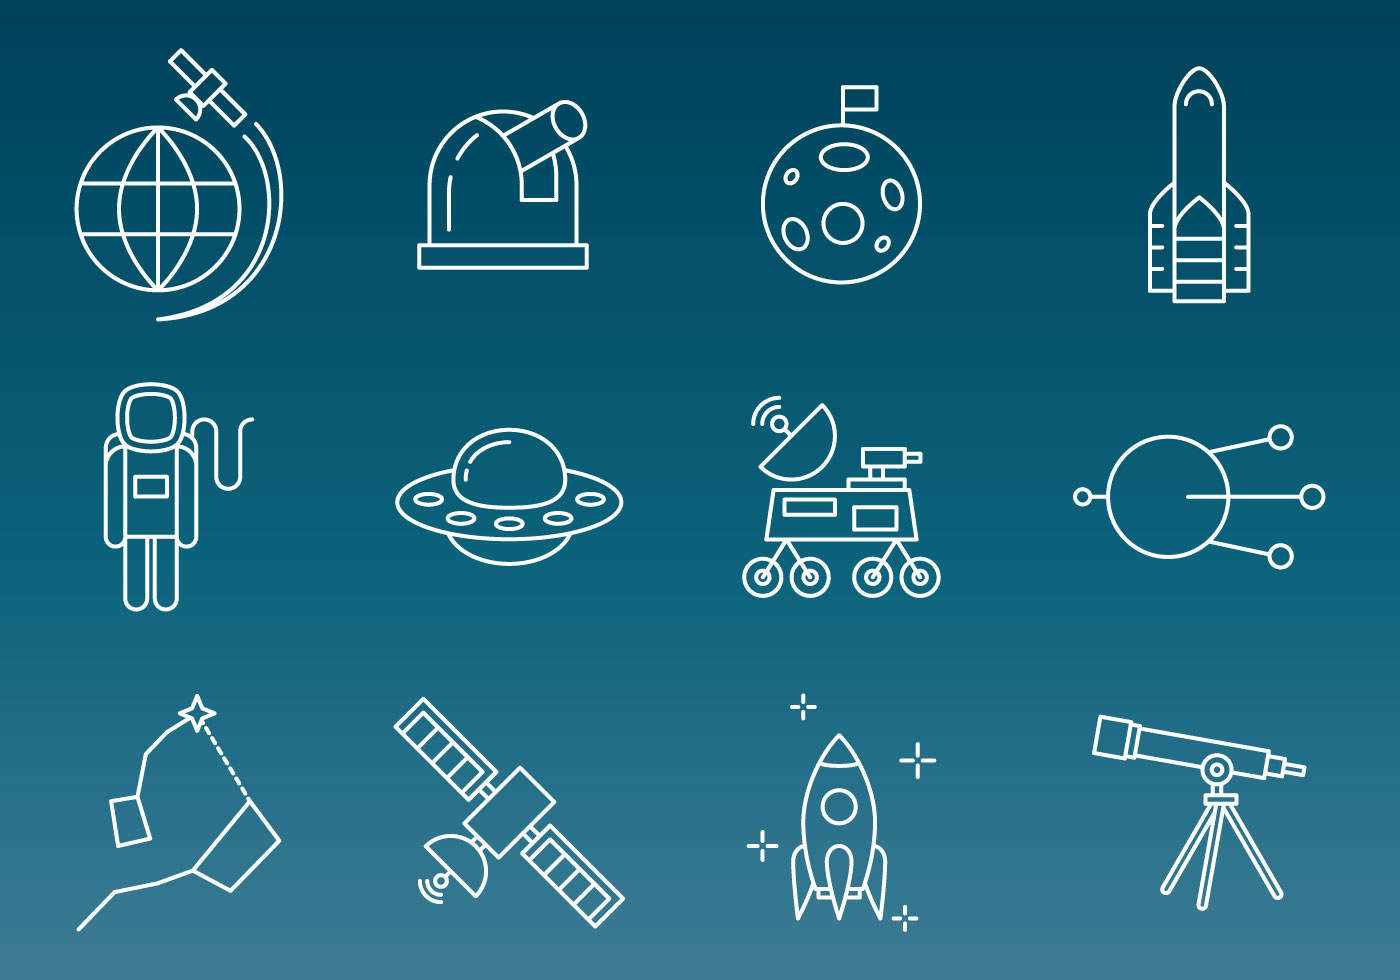 Space Technology Vector Icons - Download Free Vector Art ...